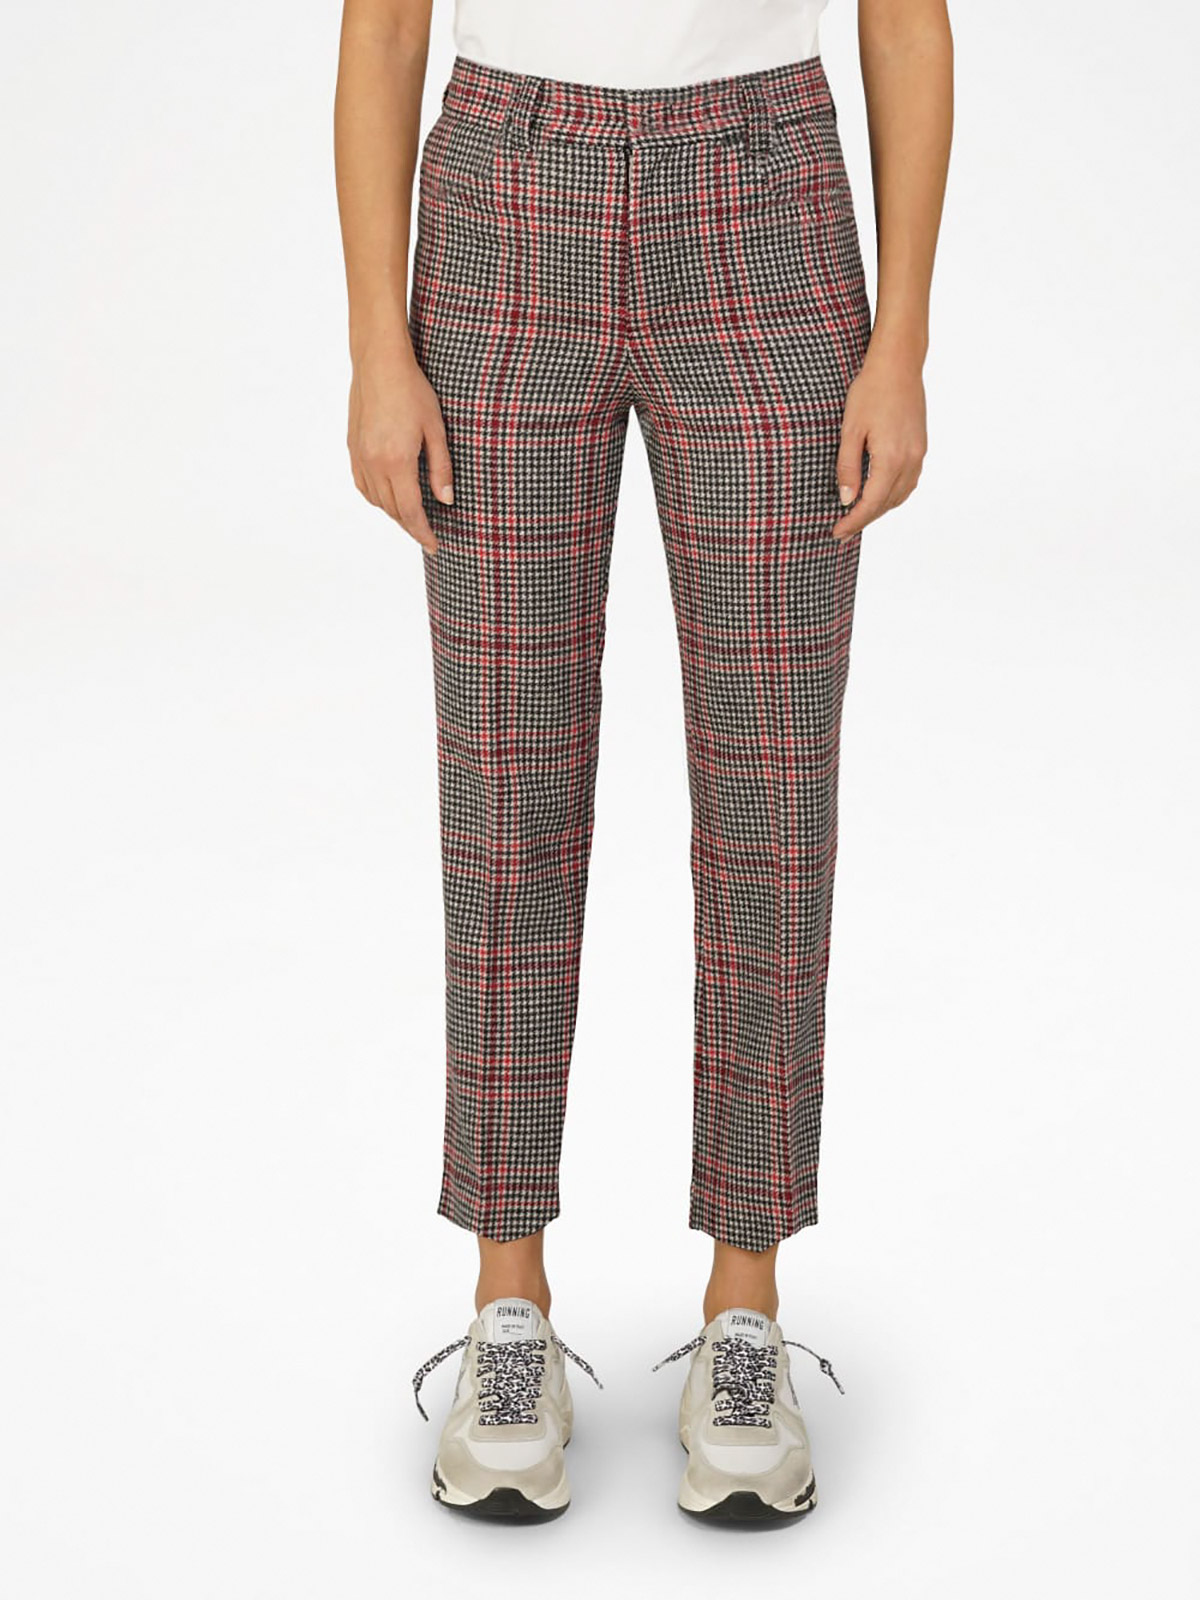 Golden Goose - Algisa trousers with houndstooth tartan pattern in